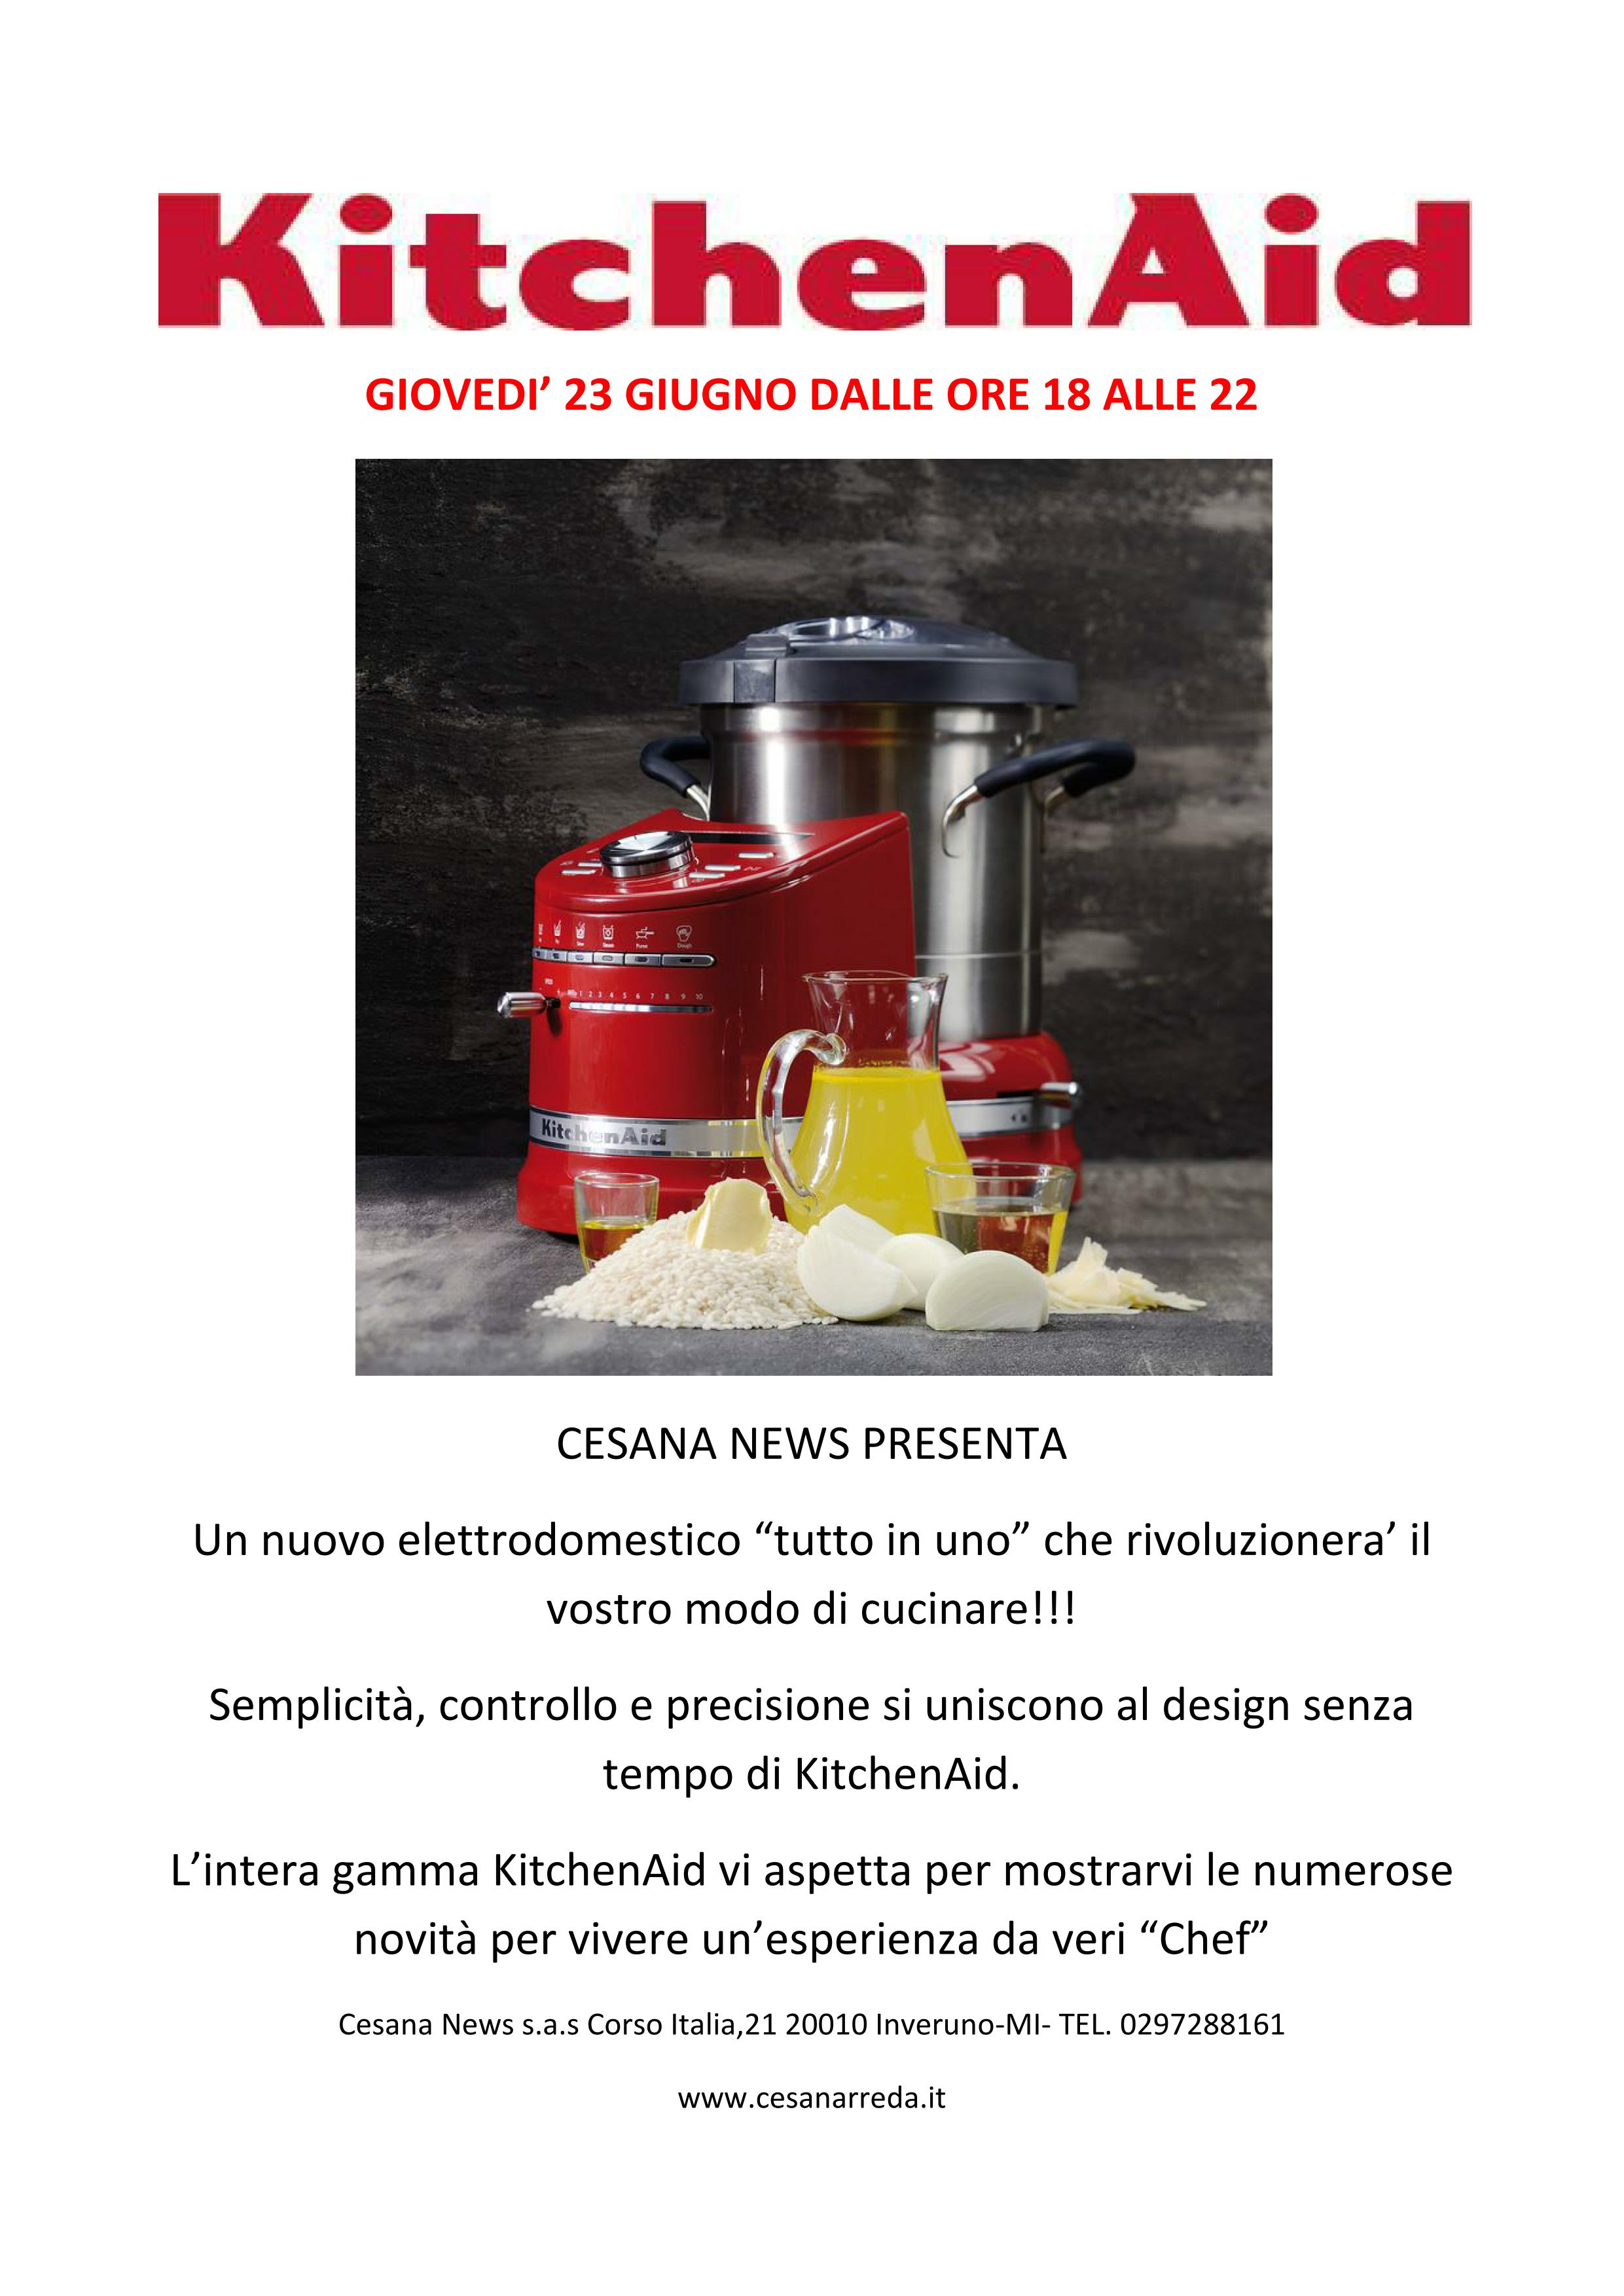 EVENTO KITCHENAID immagine_01